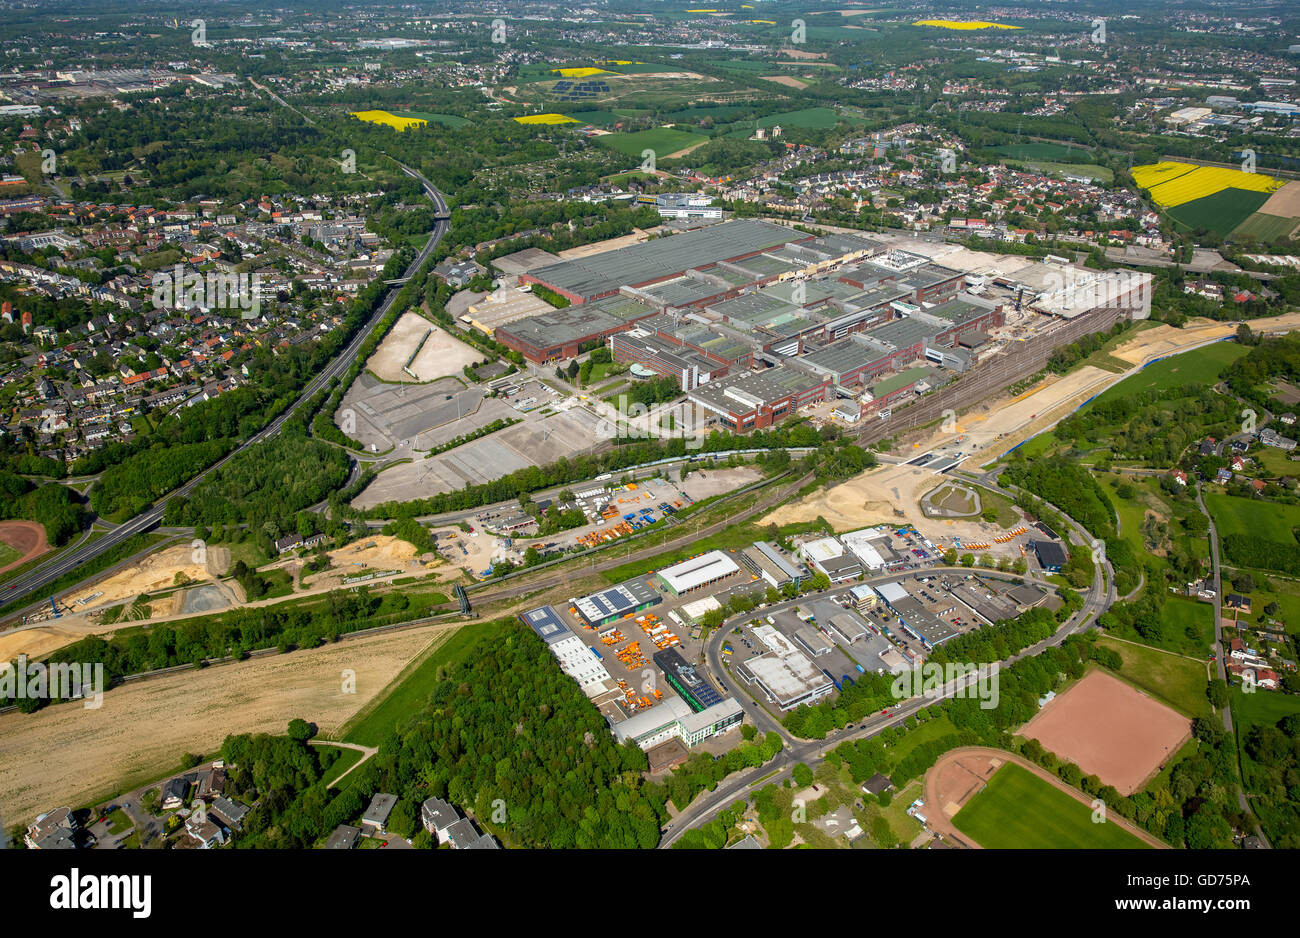 Aerial view, OPEL plant 1, demolition of the former car factory, Bochum, Ruhr district, North Rhine-Westphalia, - Stock Image